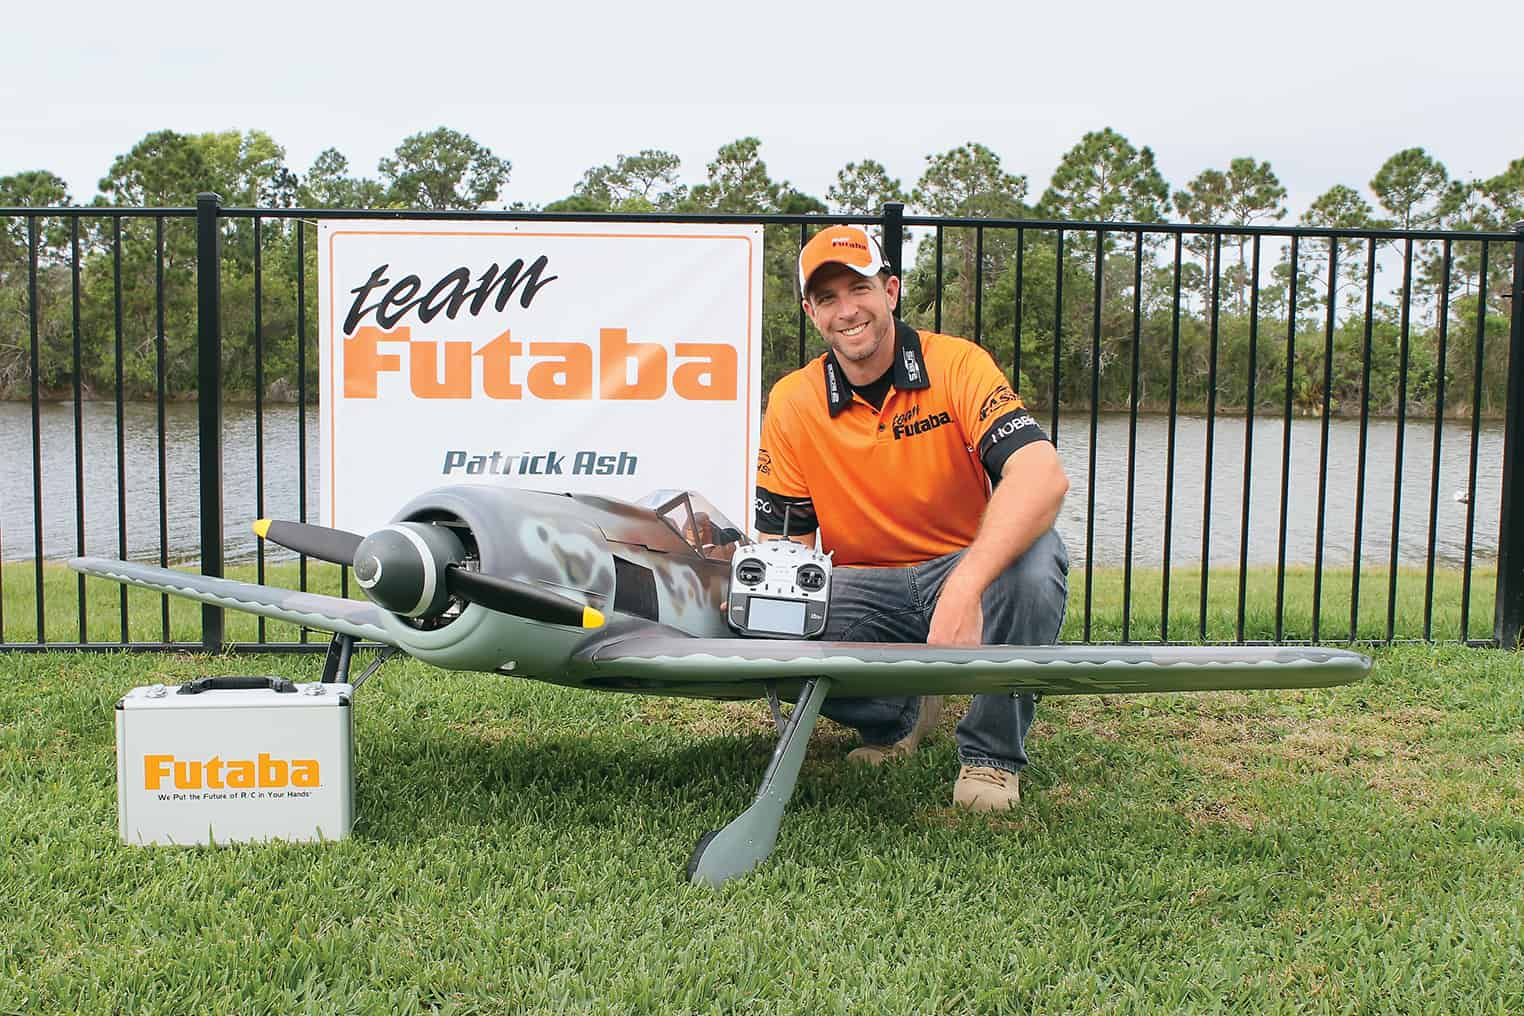 Pilot and Scale Air Enthusiast Patrick Ash Joins Team Futaba